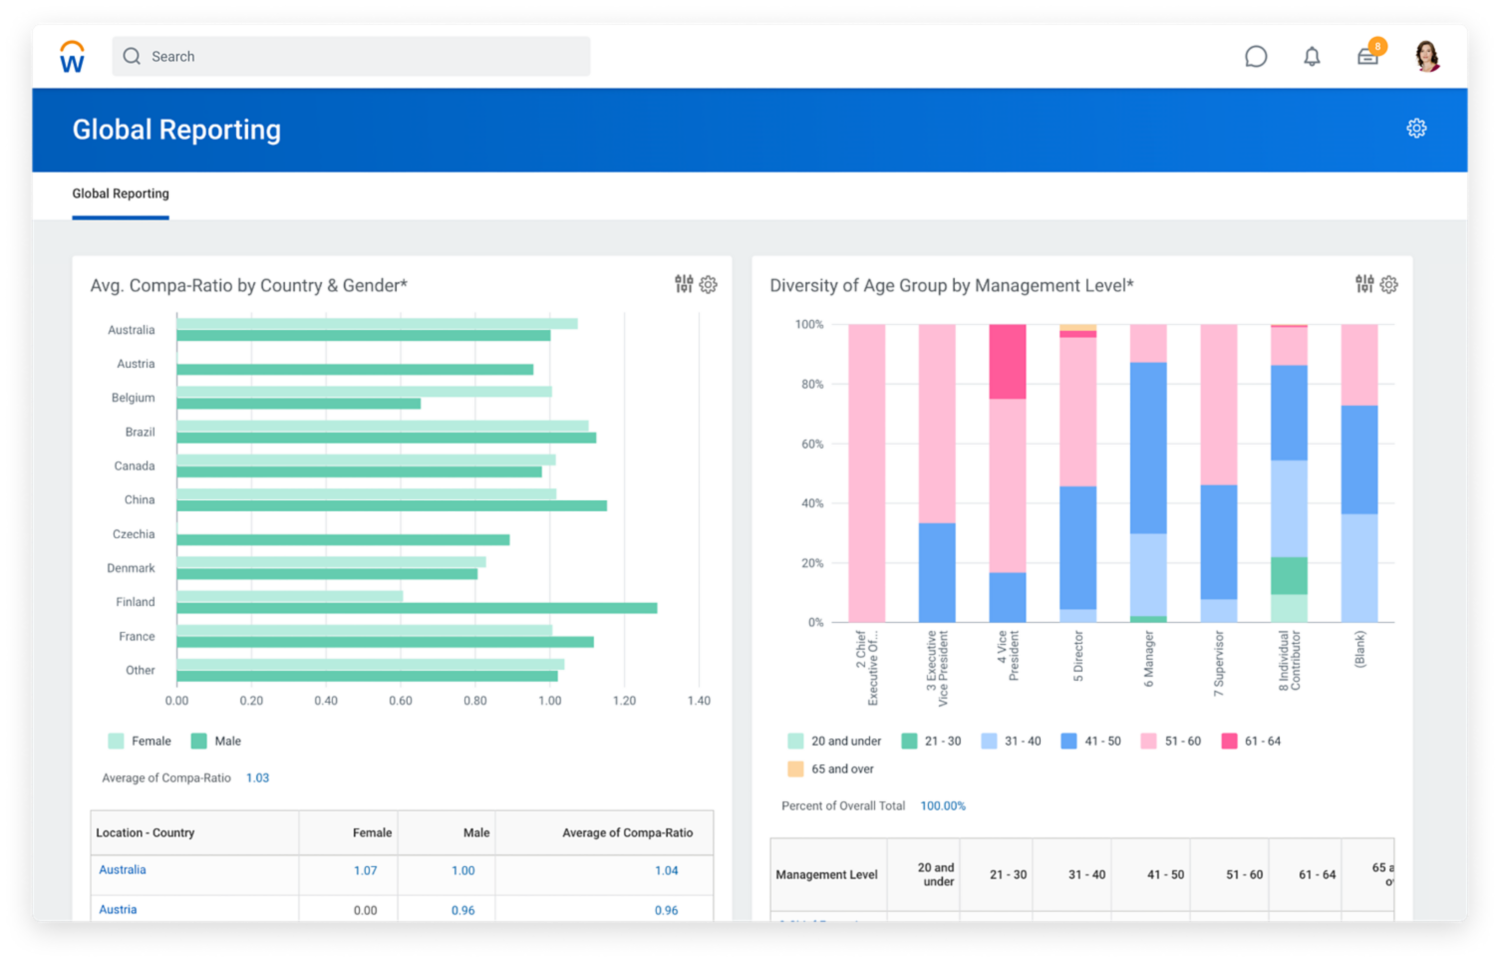 Global reporting dashboard showing bar graphs for average comp-ratio by courier and gender, and diversity age group by management level. 2020R1